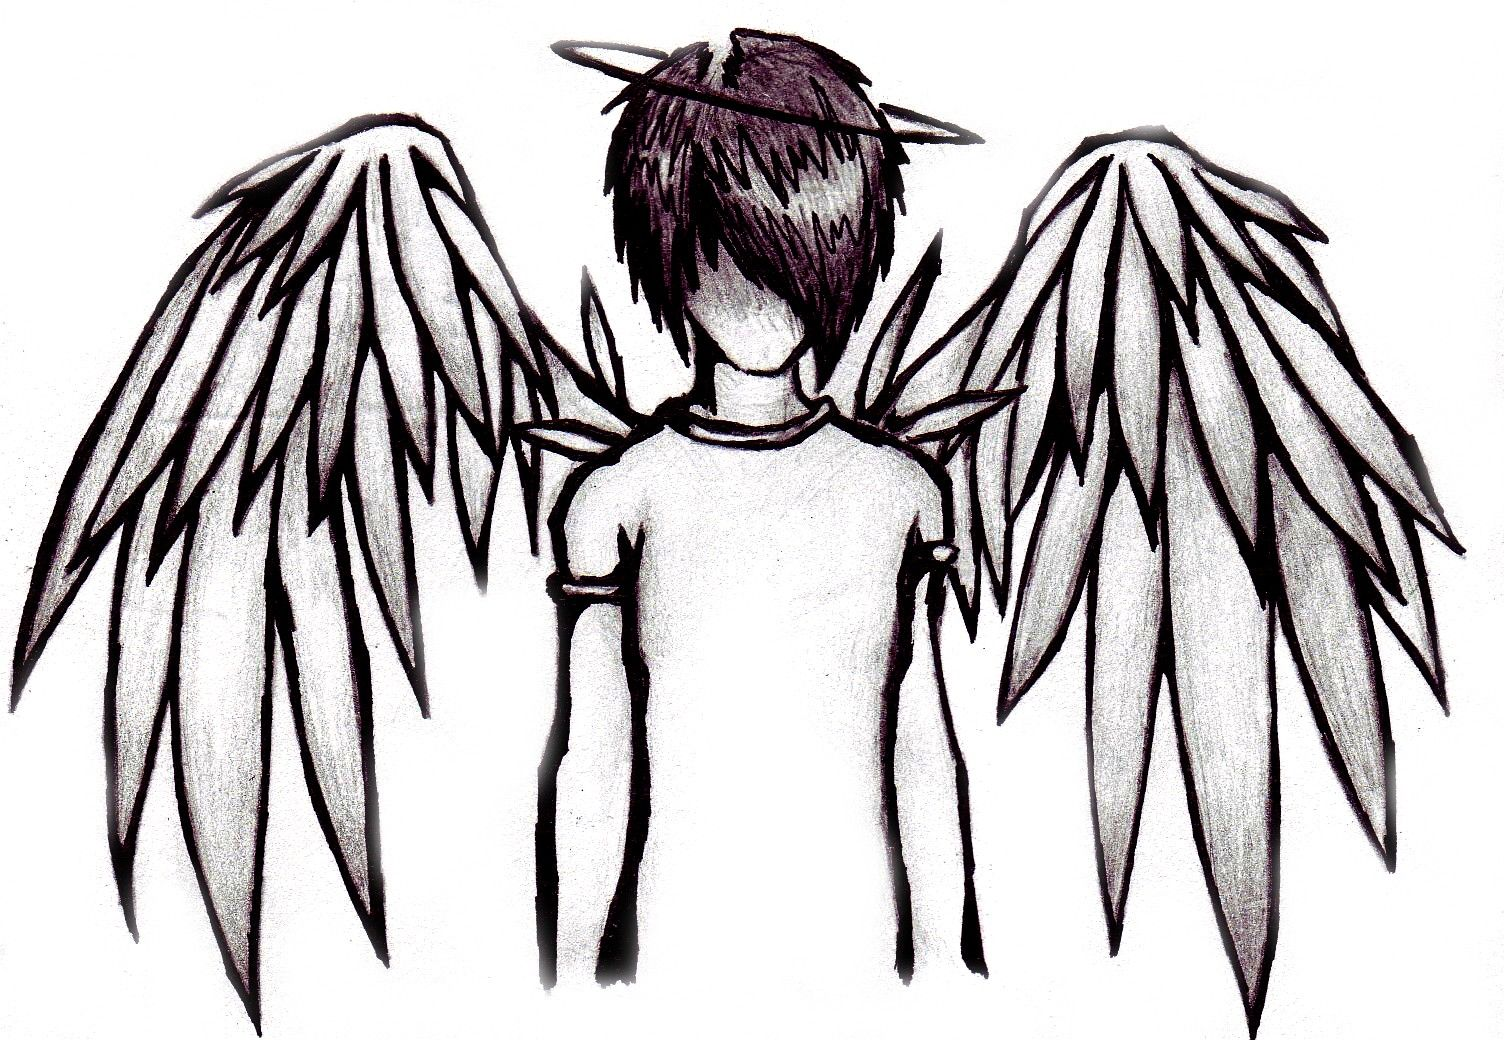 freeuse library Drawing boy fallen angel. Emo anime pinterest graffiti